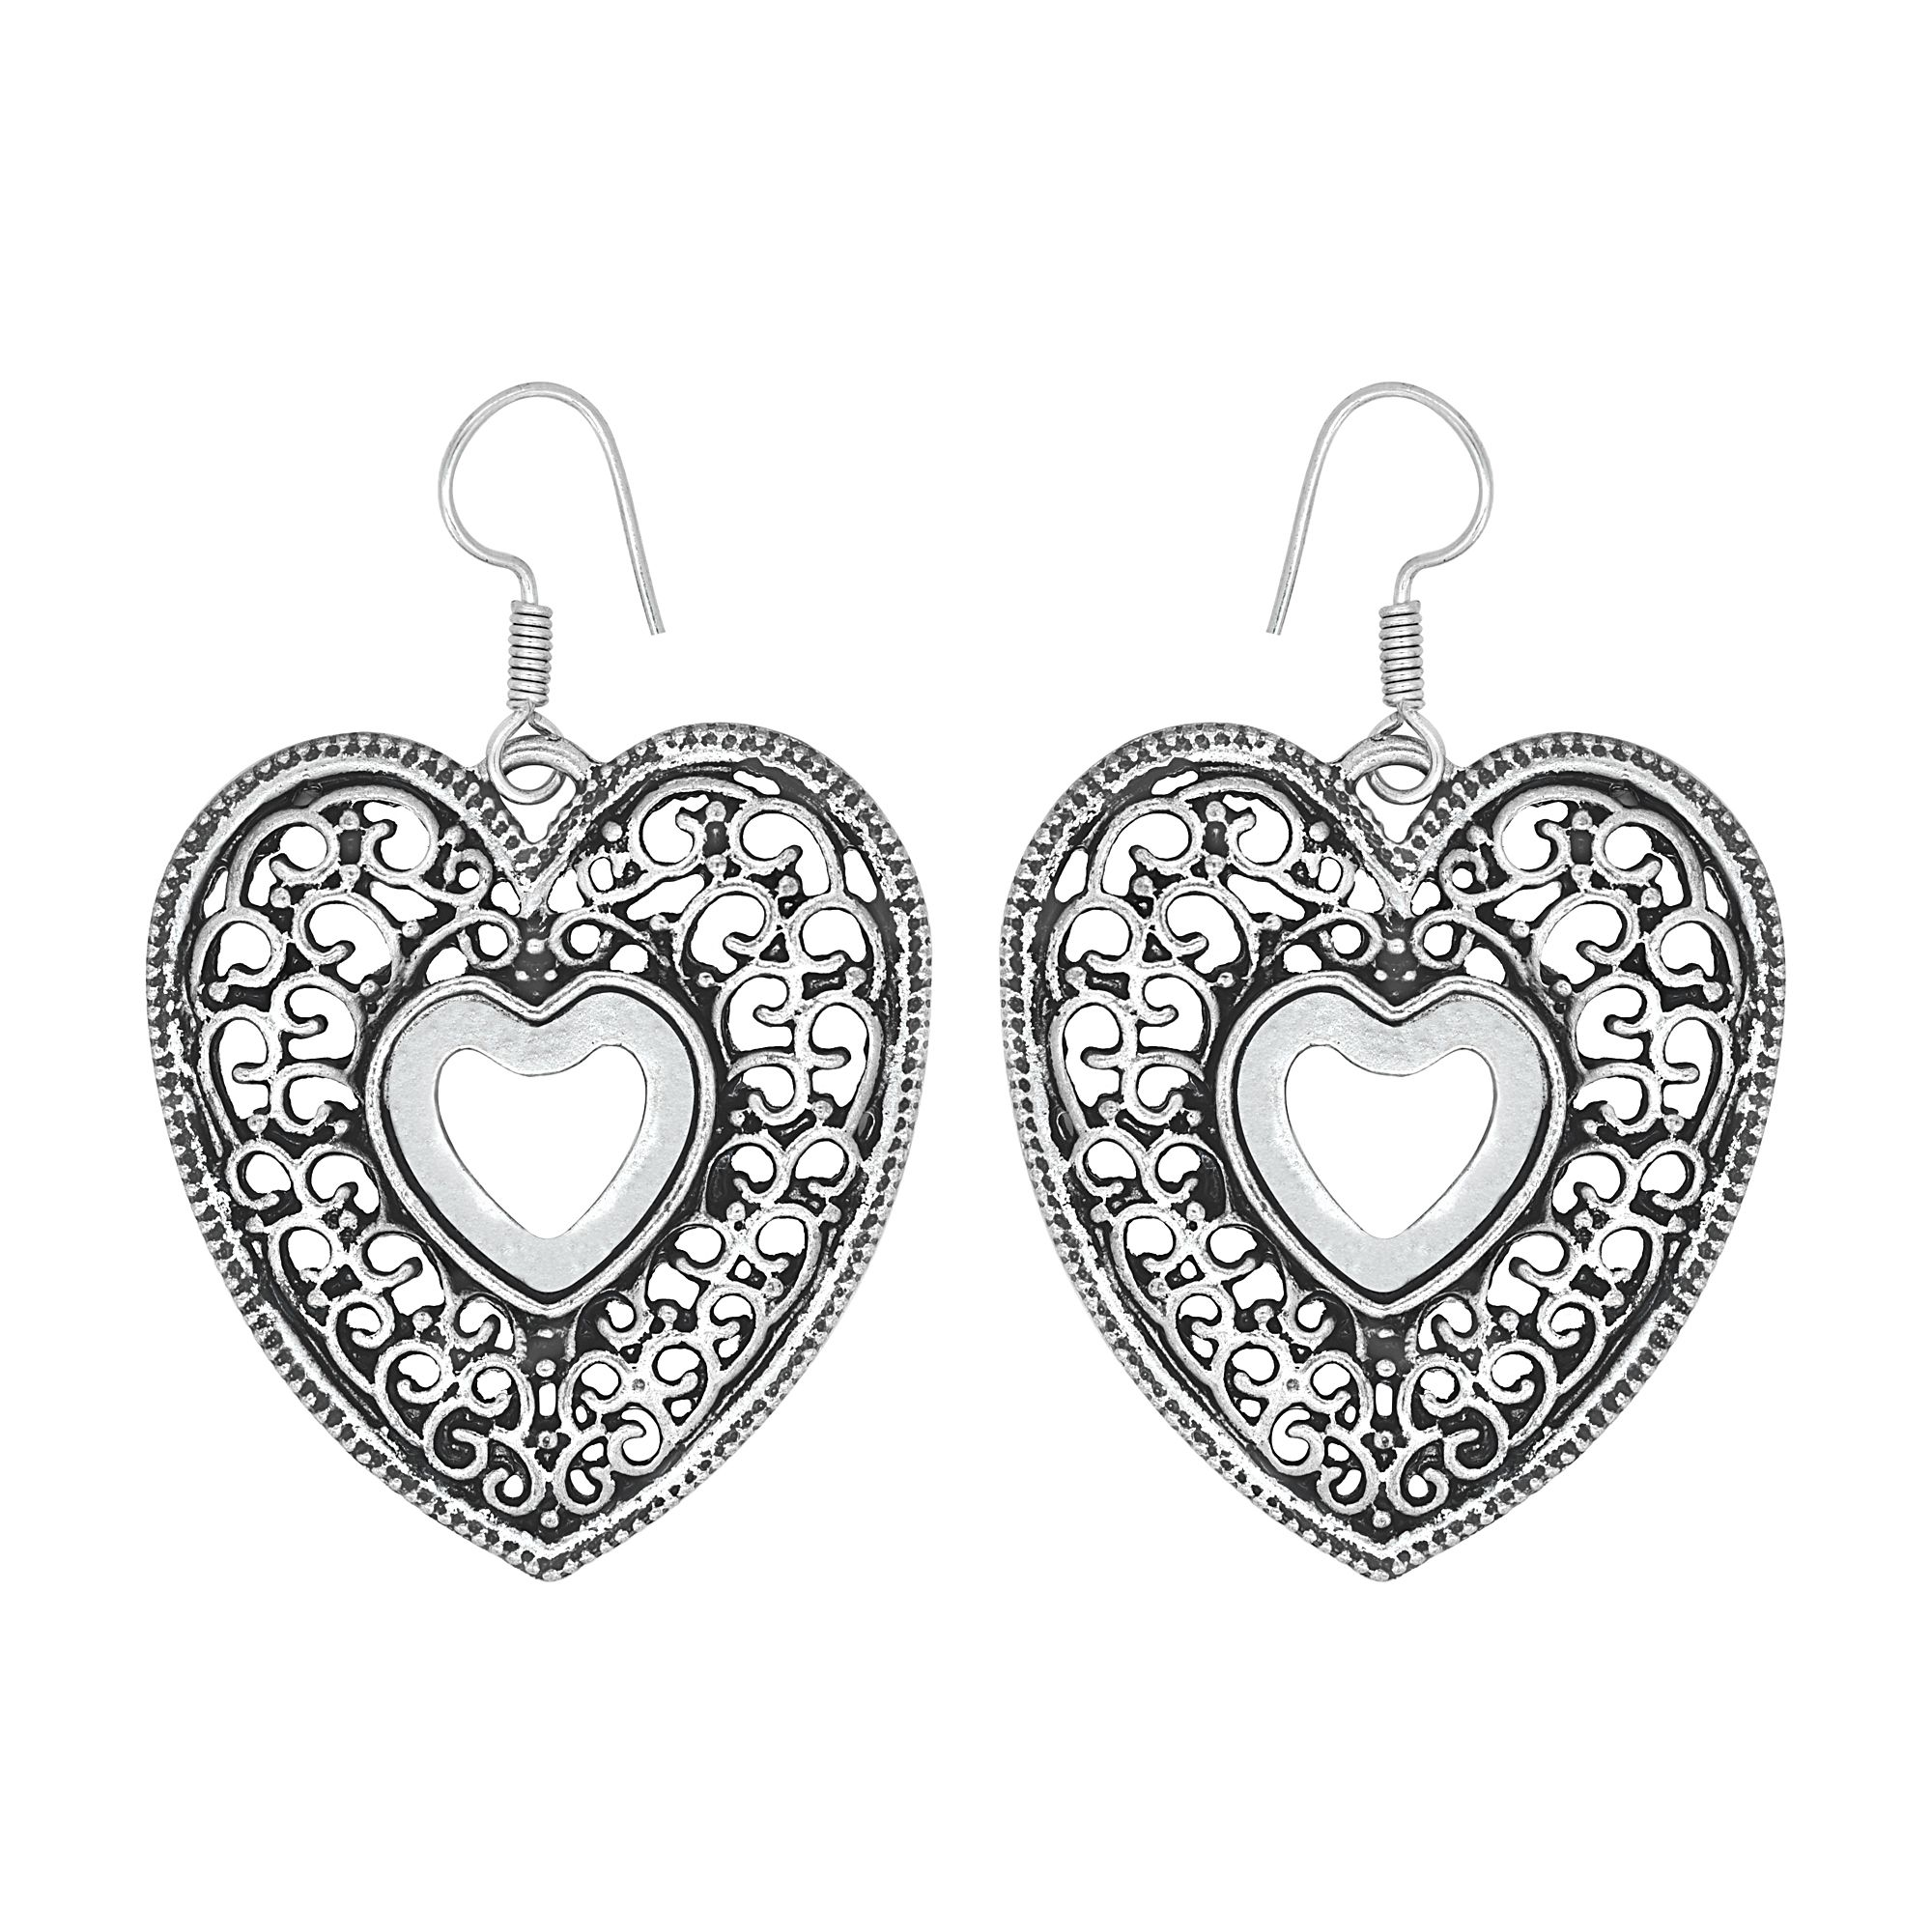 twt three stone shaped earring platinum earrings set heart ct in certified diamond g shape prong d f